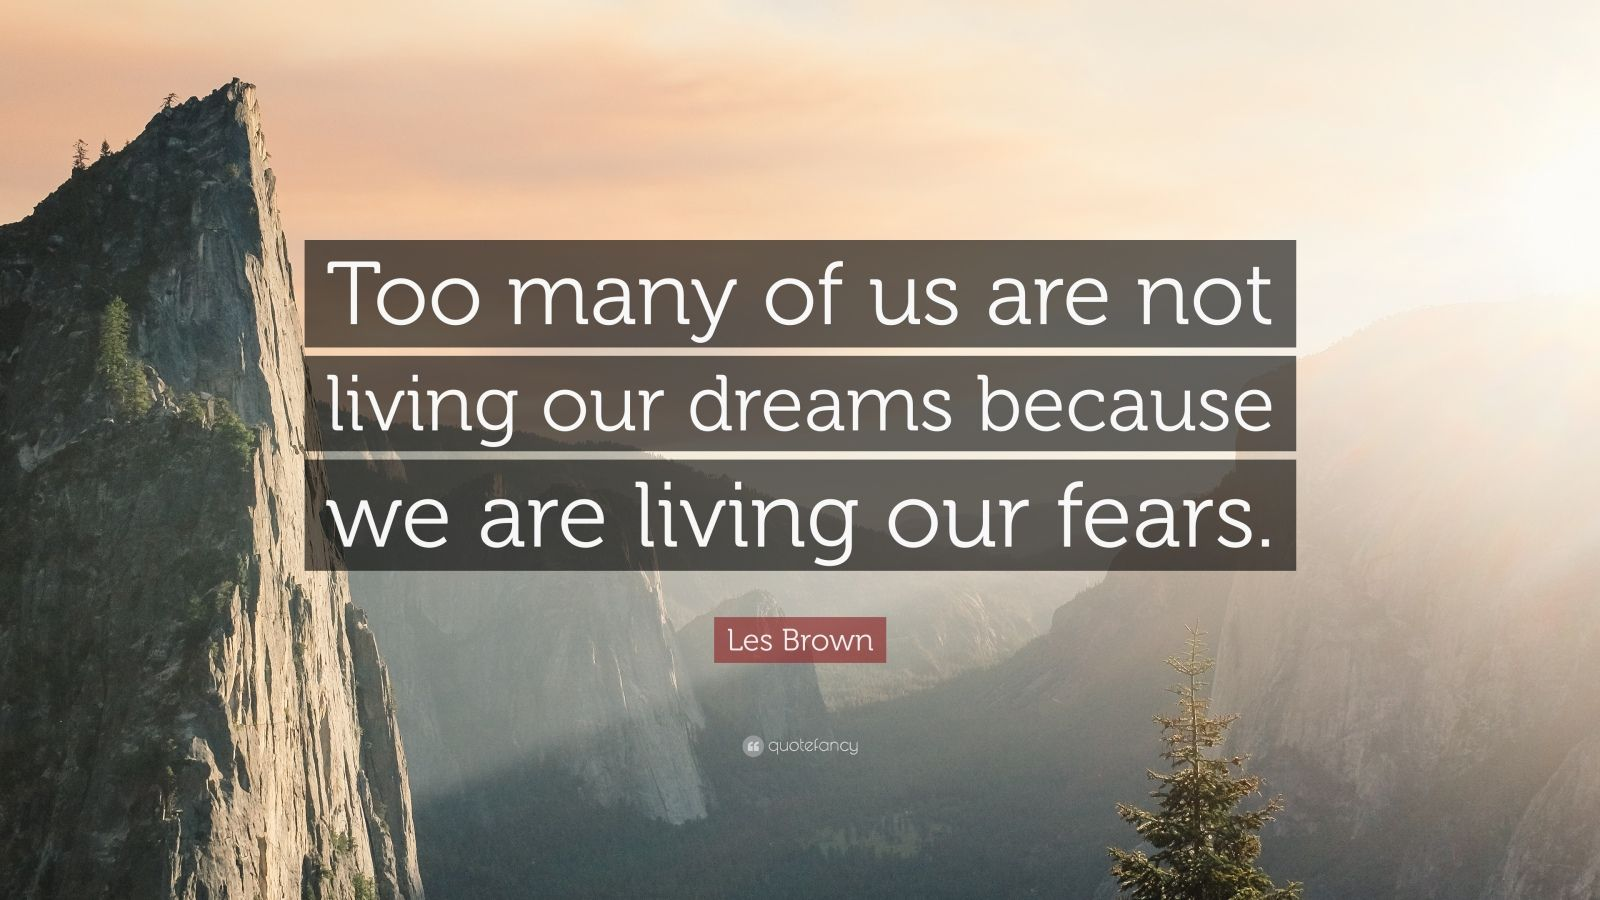 Focus Quotes Wallpaper Les Brown Quote Too Many Of Us Are Not Living Our Dreams